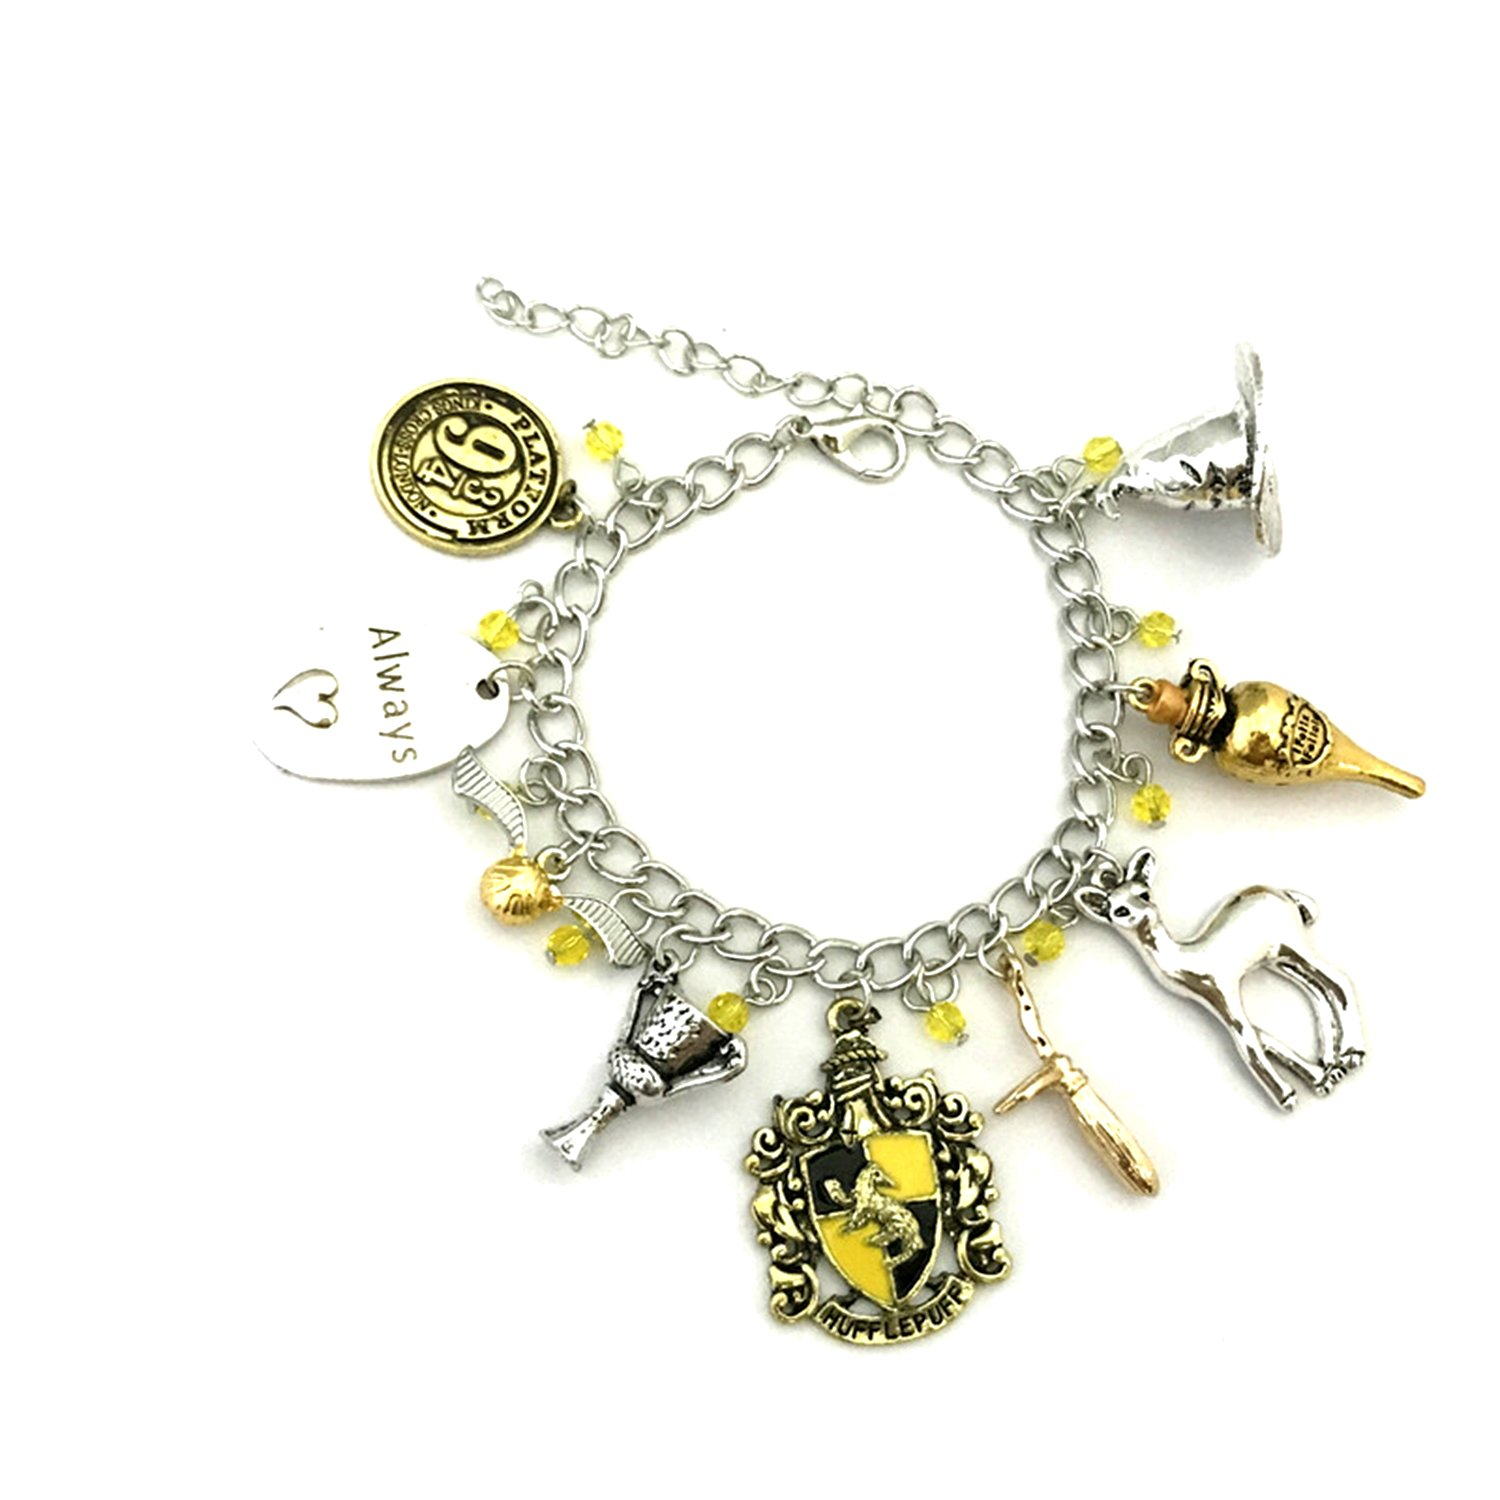 Hufflepuff Theme Multi Charms Lobster Clasp Bracelet in Gift Box